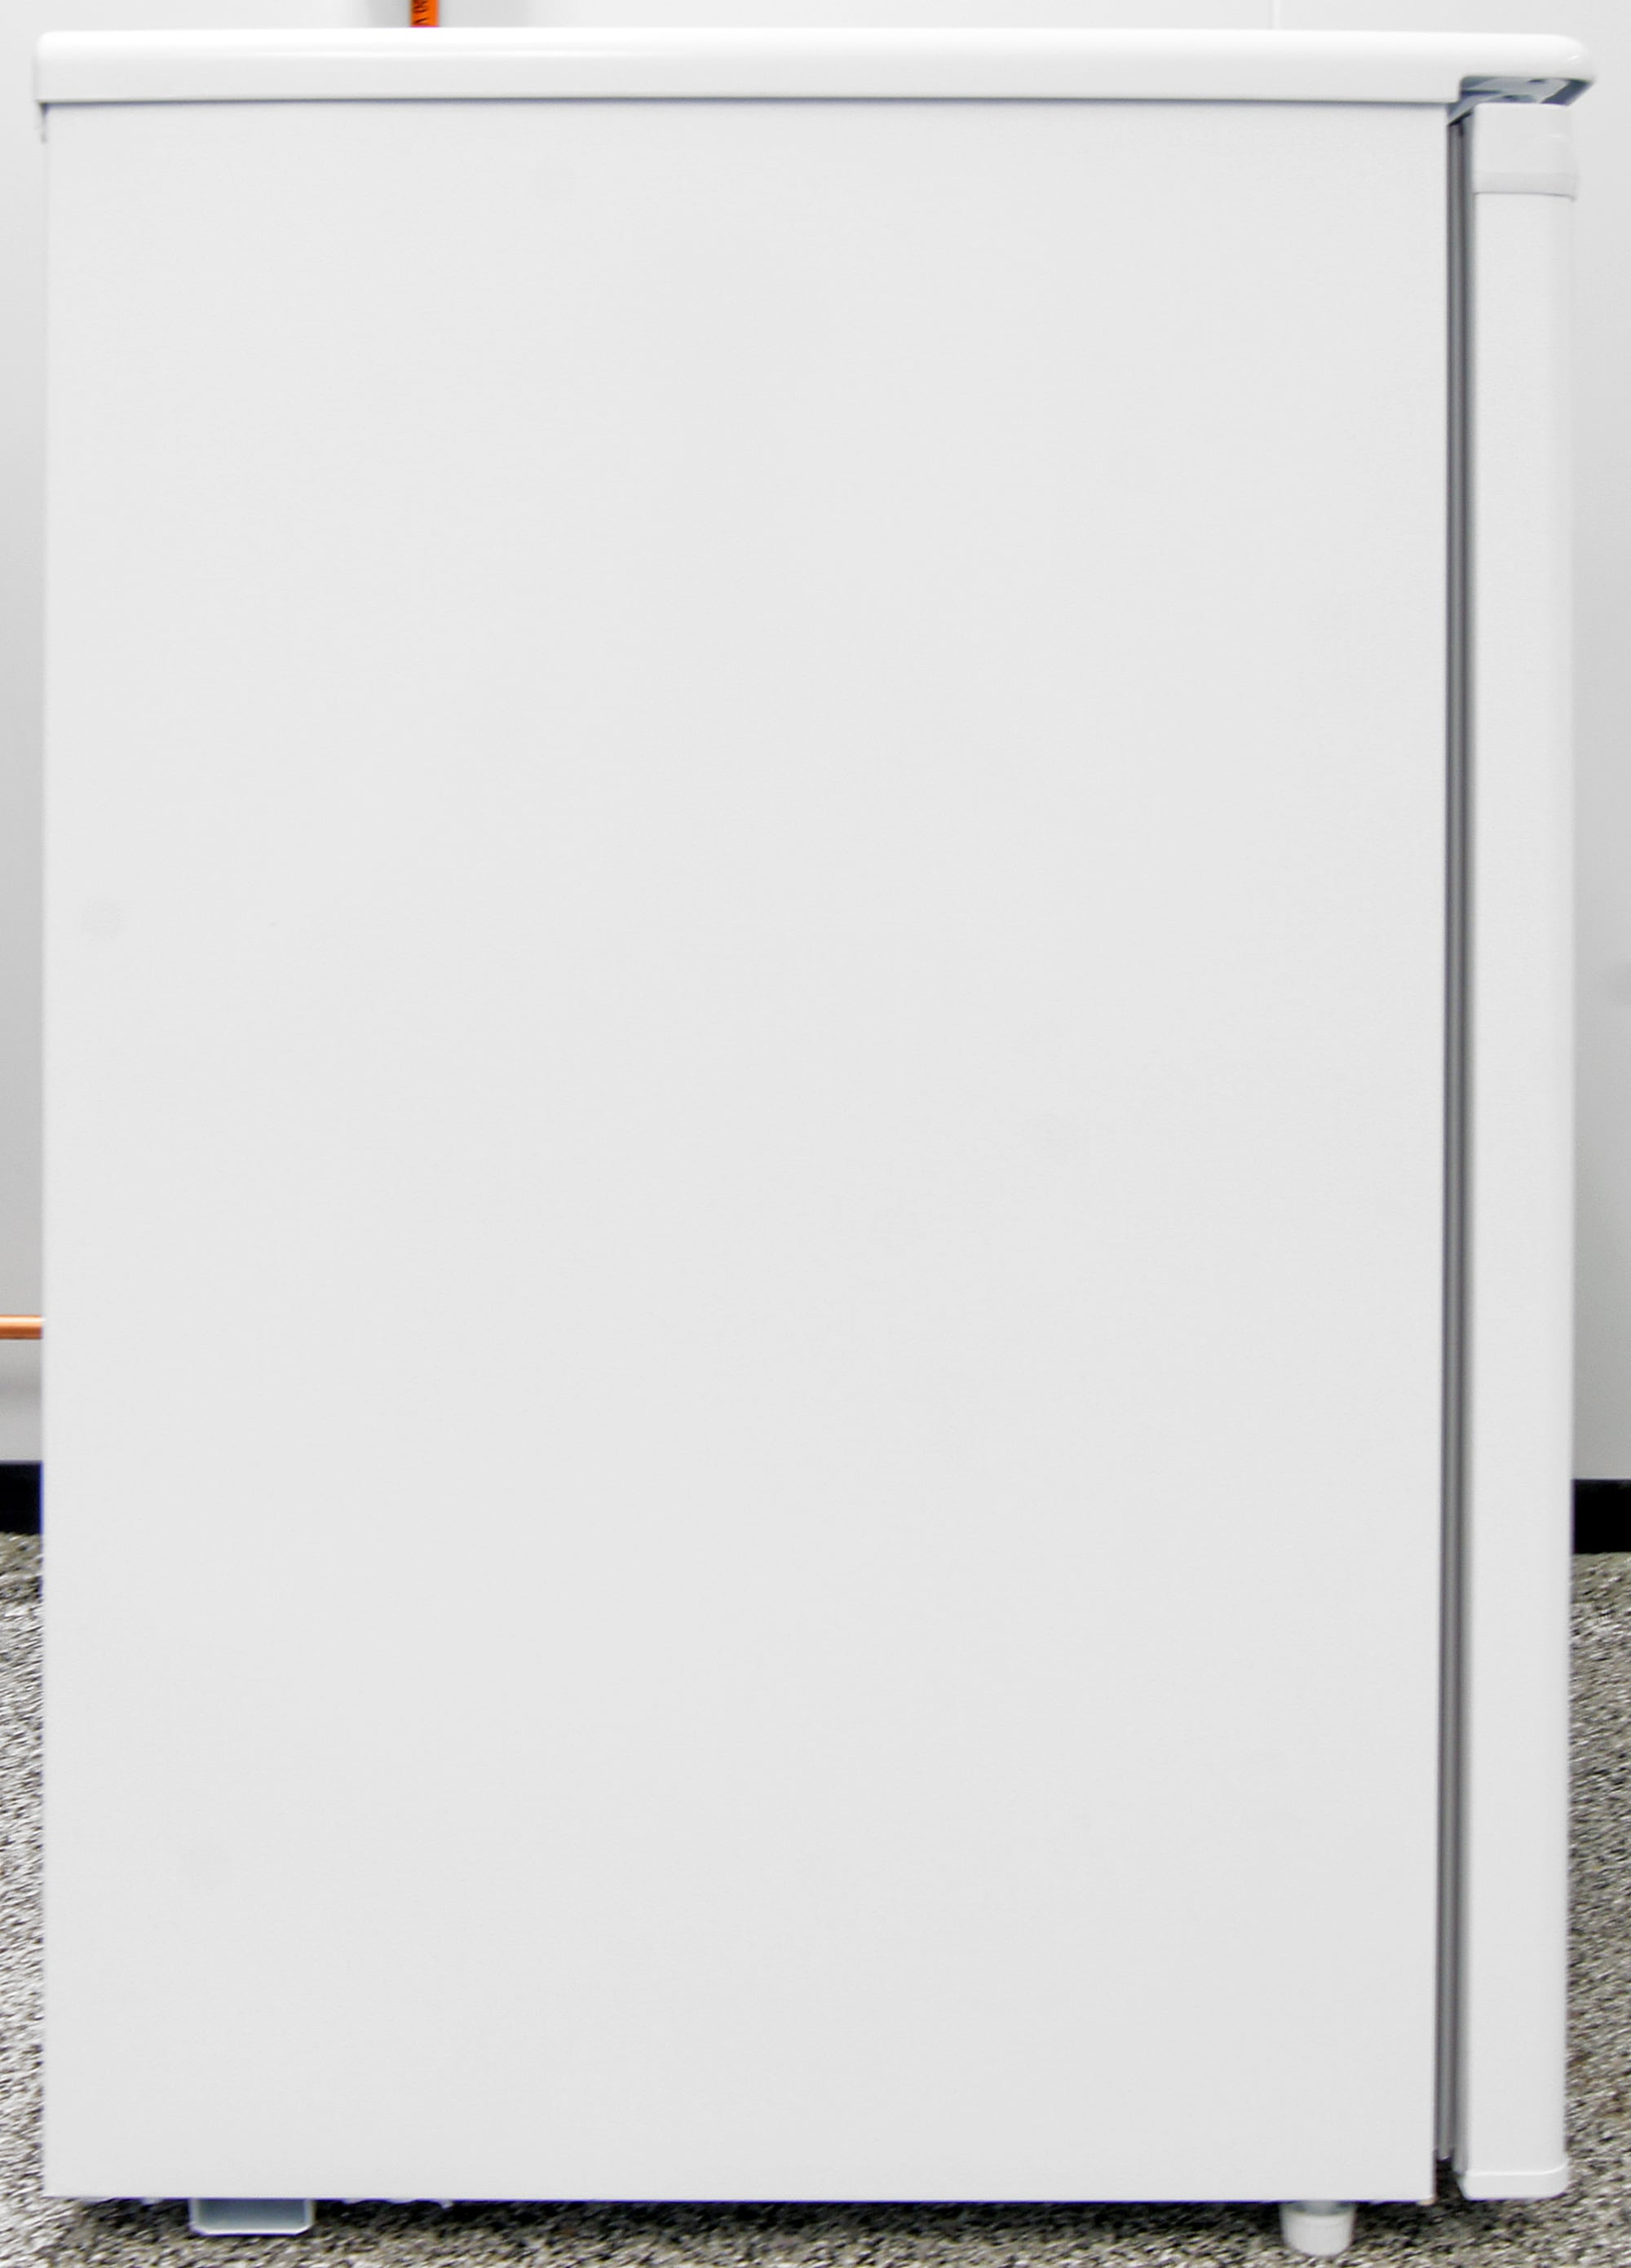 Plain white sides: common on appliances of all sizes, not just the Danby DUF408WE.